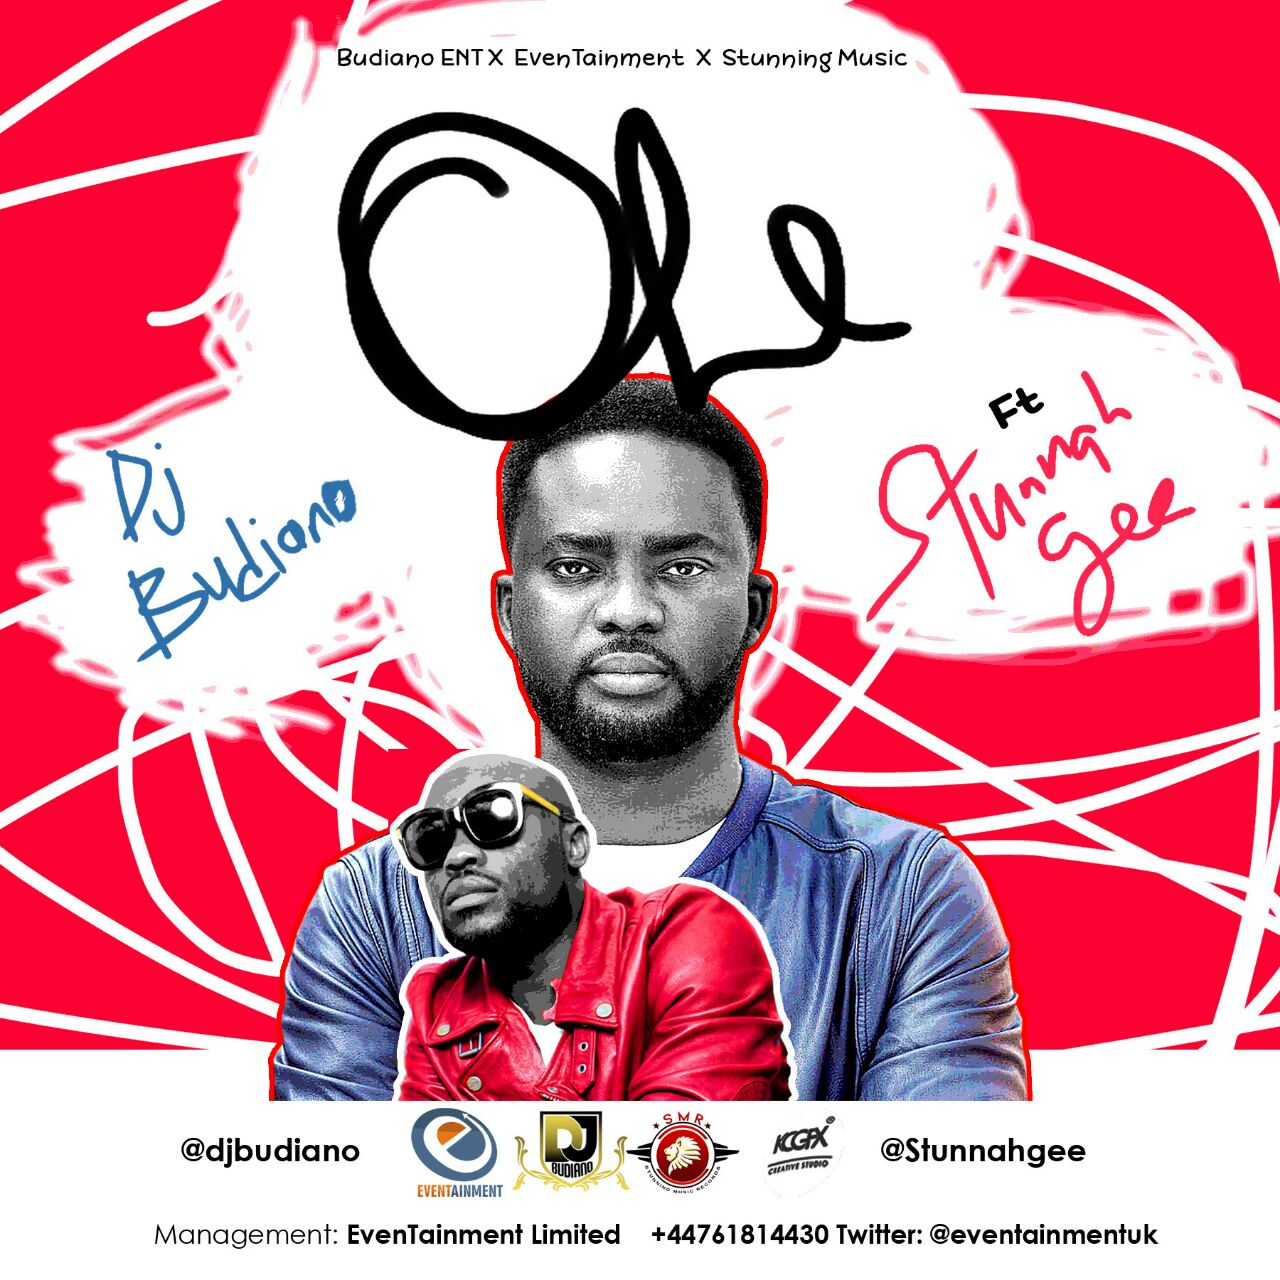 Dj Budiano Ft. Stunnah Gee – Dj Budiano - Ole Ft. Stunnah Gee (Prod. Lexy Flow)